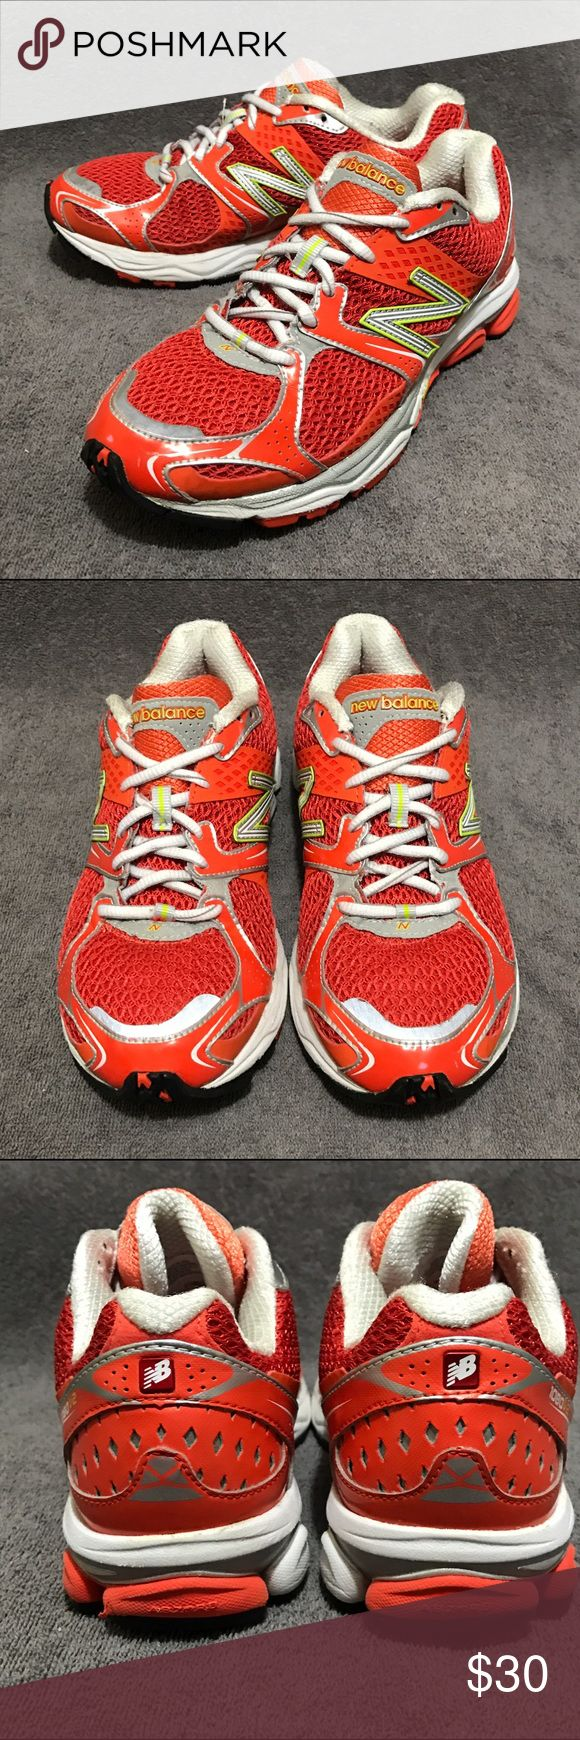 Women's New Balance 1080 v2 Sz 7 Very gently worn and has a ton of  life left! New Balance Shoes Athletic Shoes